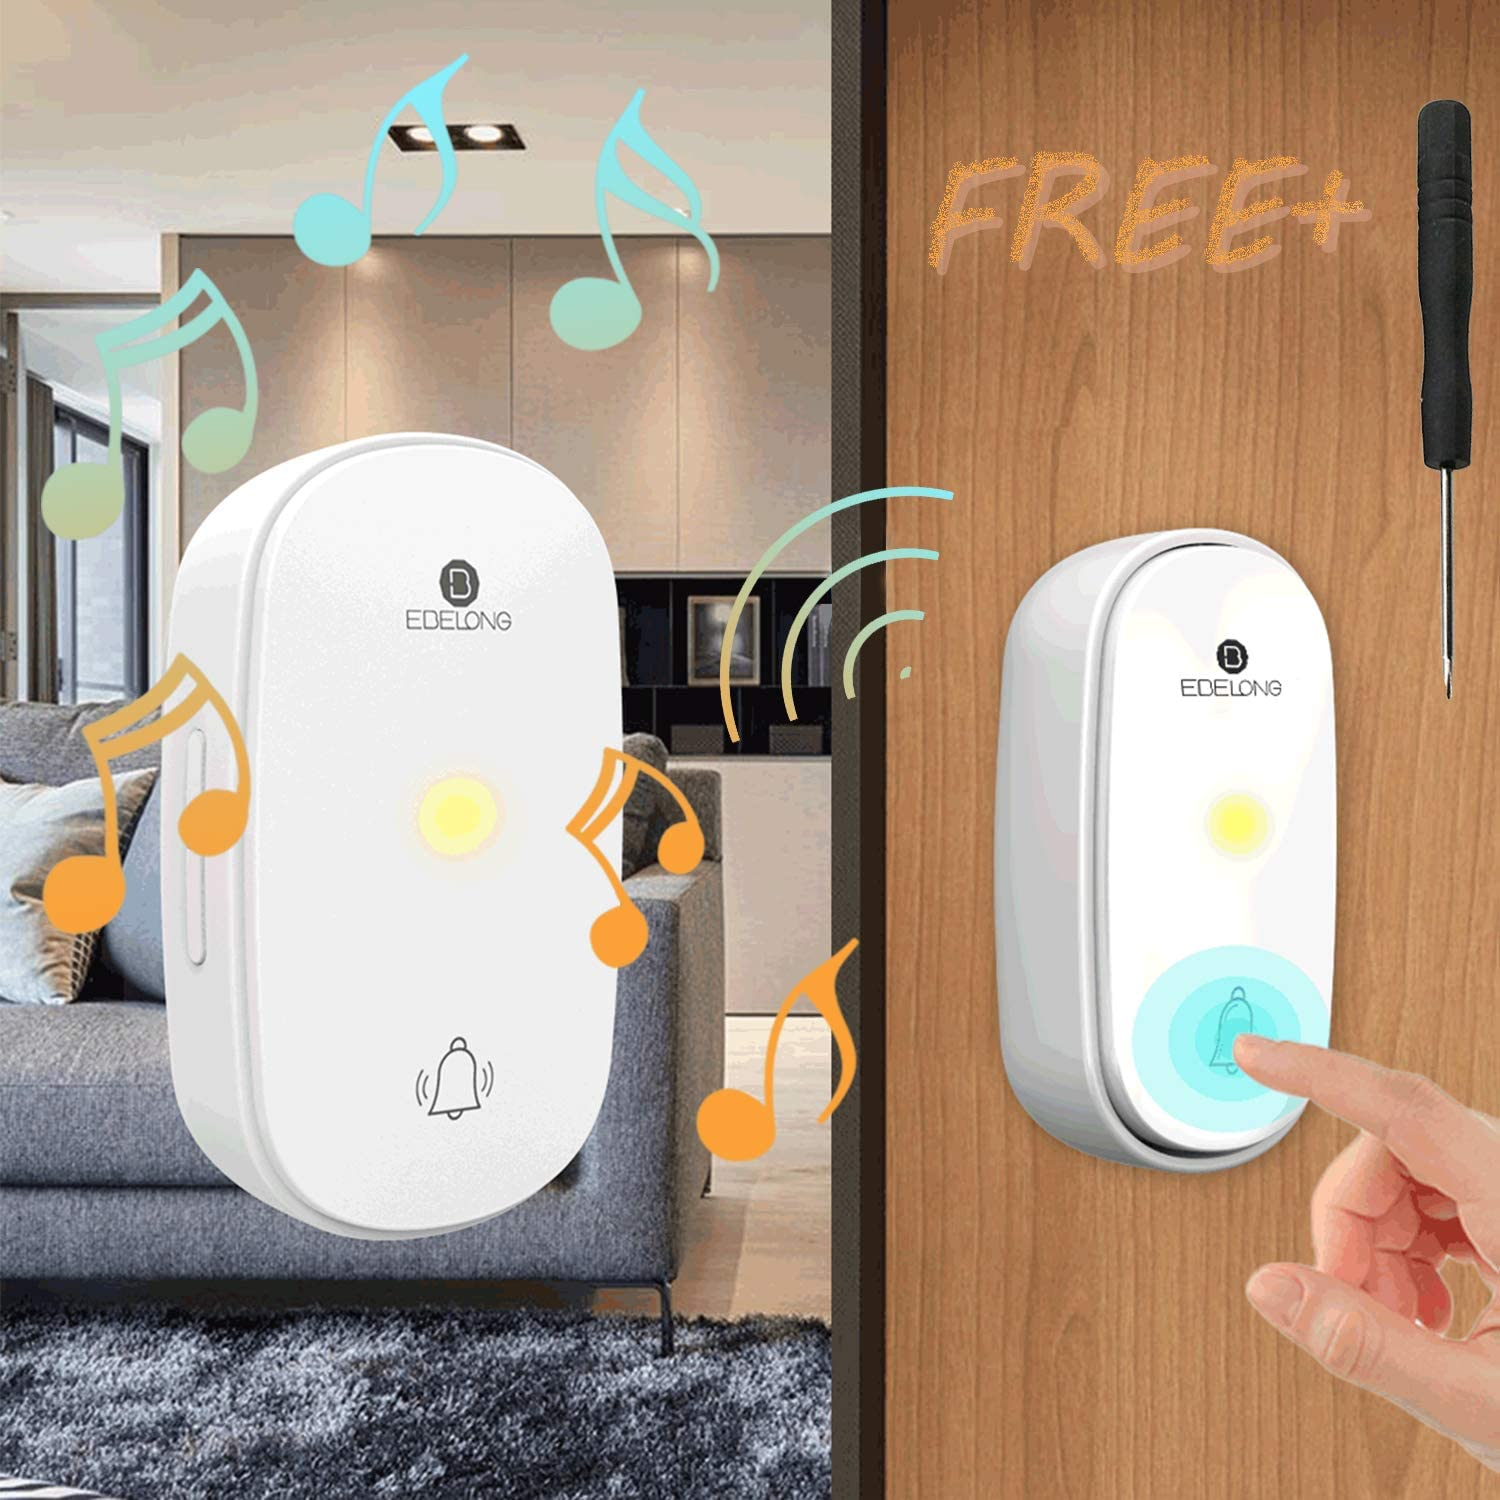 IPV4 Wireless Doorbell Kit, Windproof, Waterproof and Dustproof, Battery-free Remote Control Doorbell, 38 Ringtones and 4 Levels of Volume, Suitable for Home/Apartment/Office/Classroom Use (White)